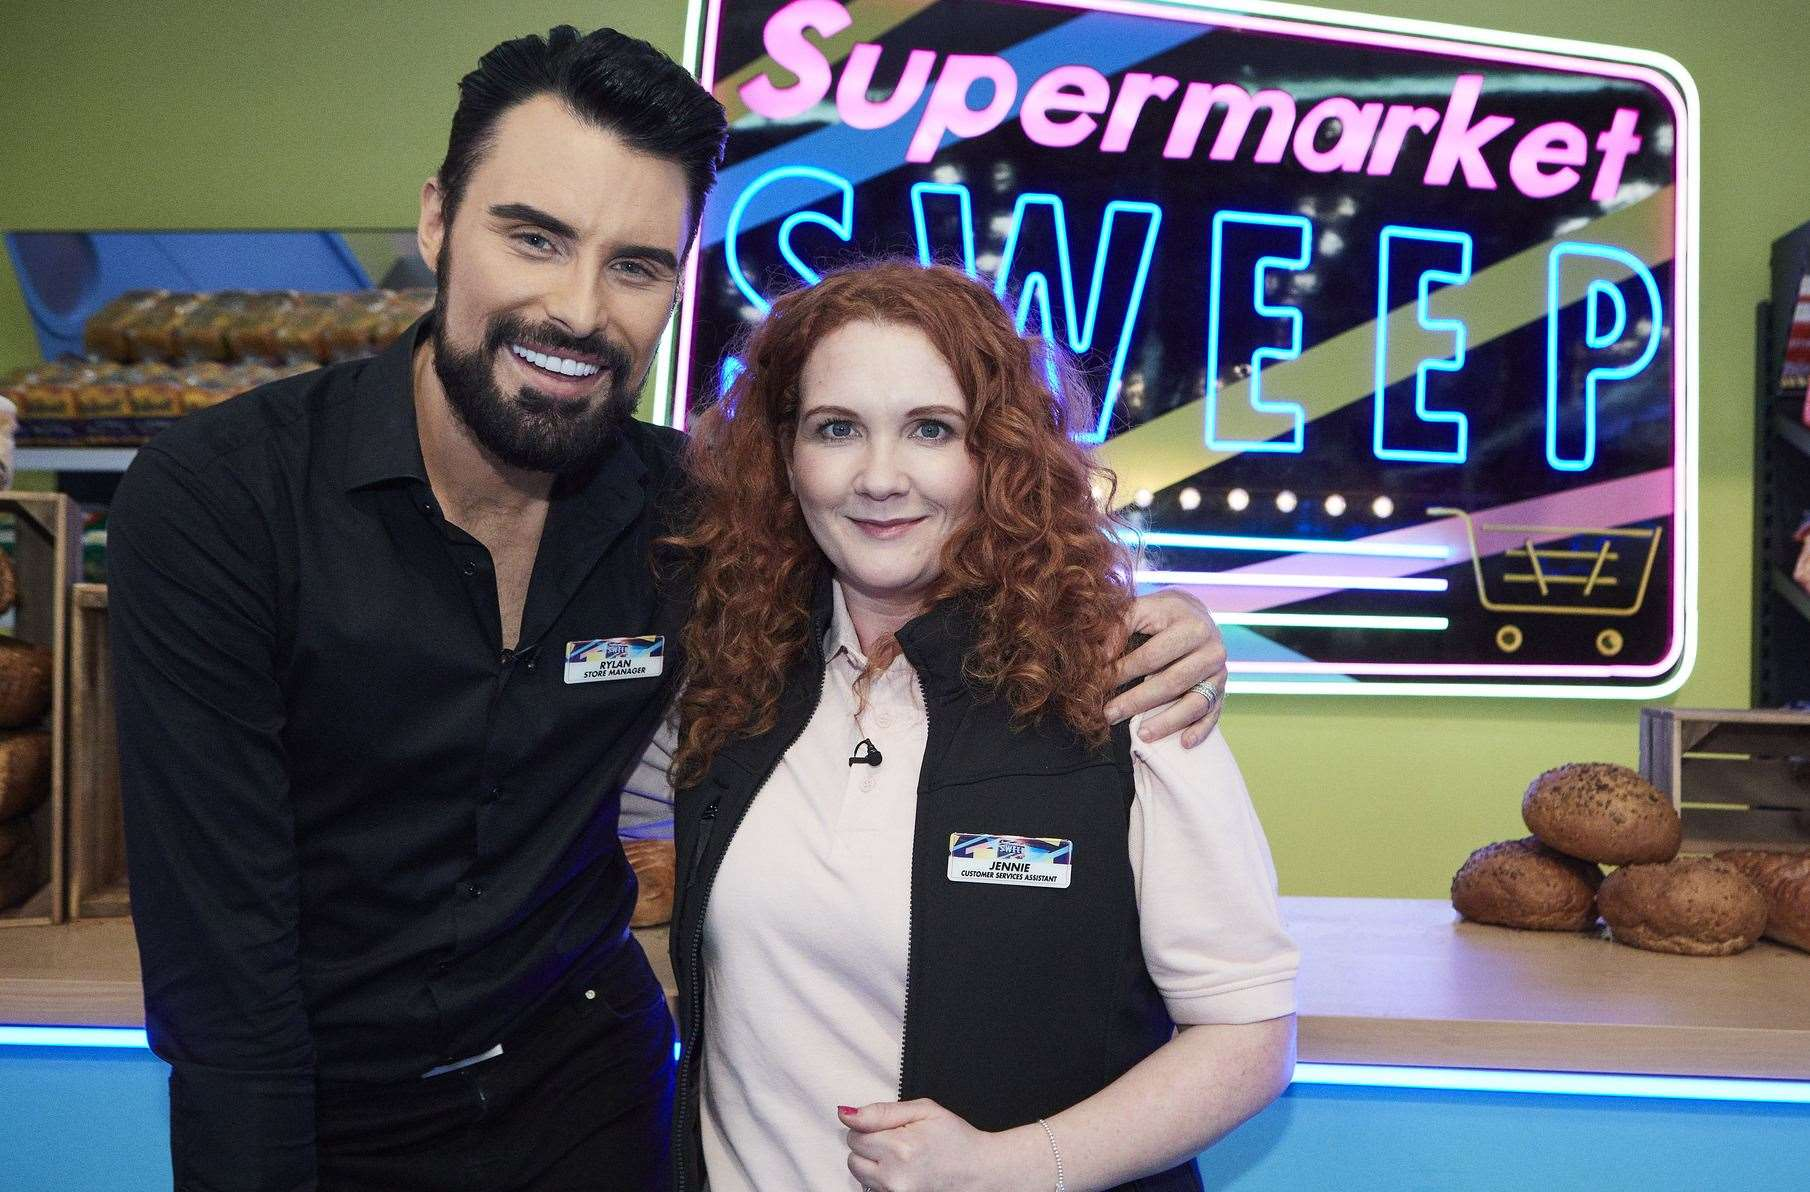 Rylan Clark-Neal will be joined by Coronation Street's Jenni McAlpine on Supermarket Sweep. Picture: Matt_Frost